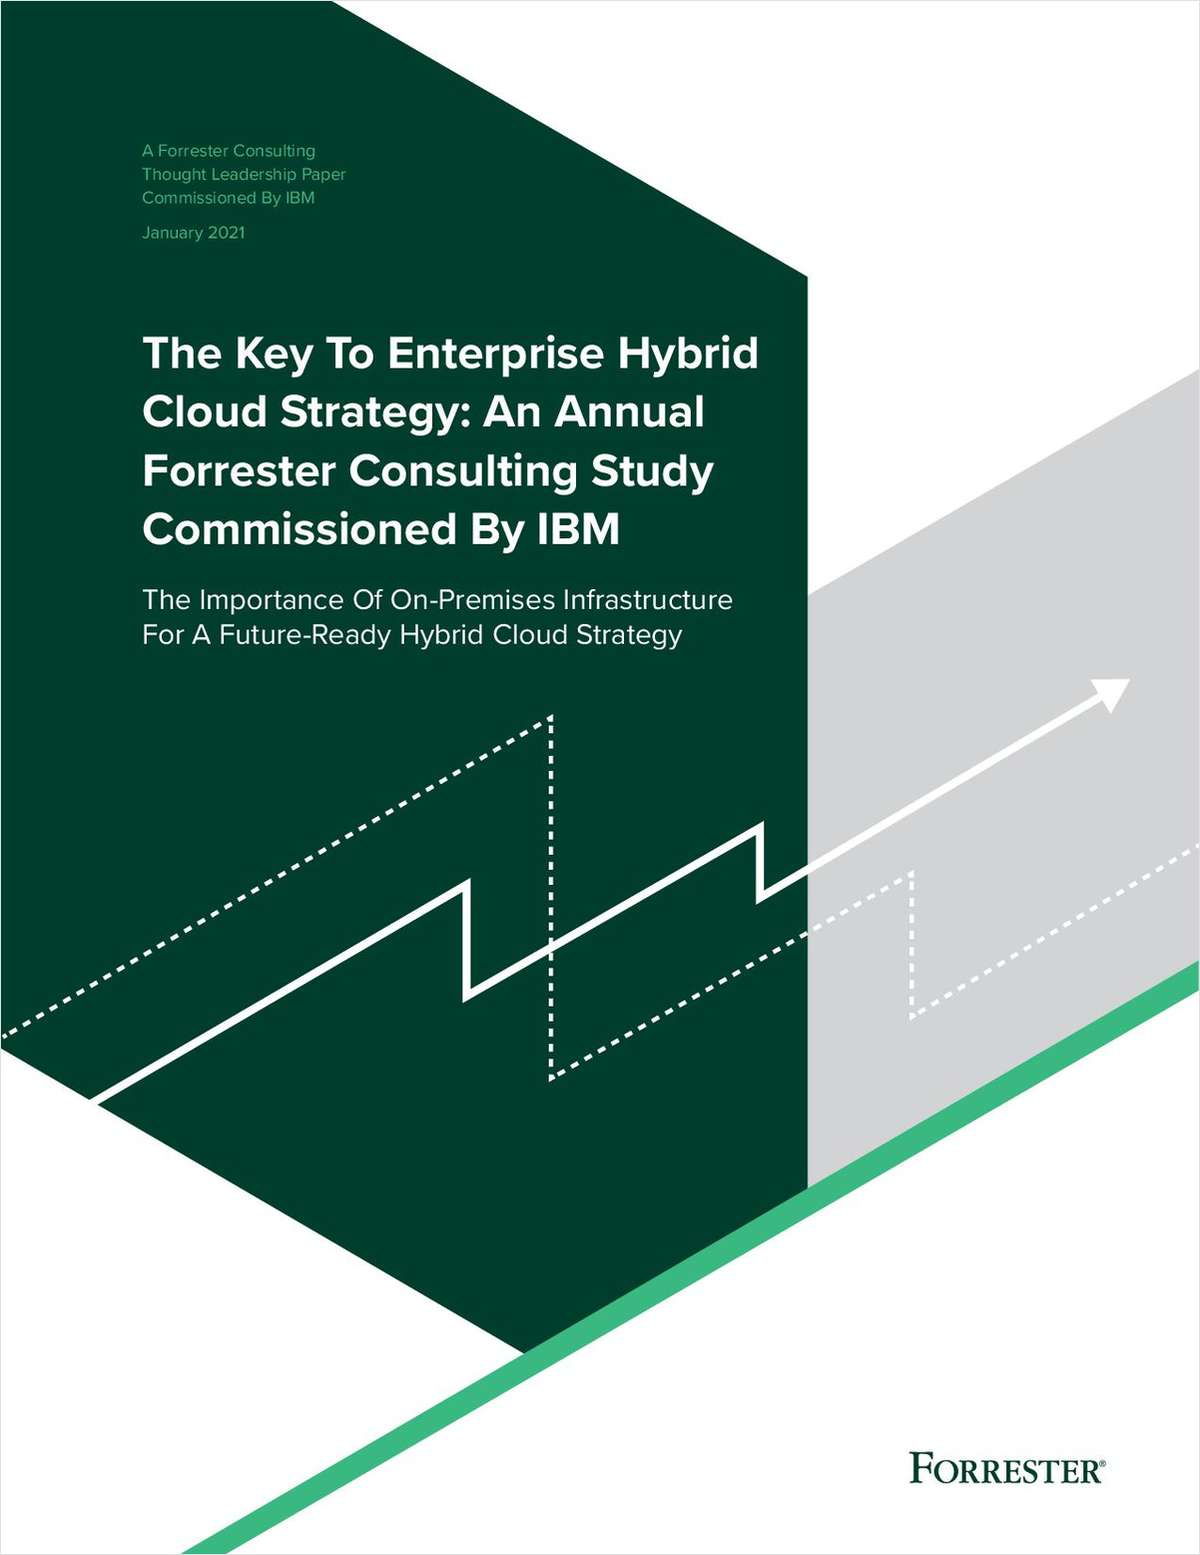 The Key to Enterprise Hybrid Cloud Strategy: An Annual Forrester Consulting Study Commissioned by IBM